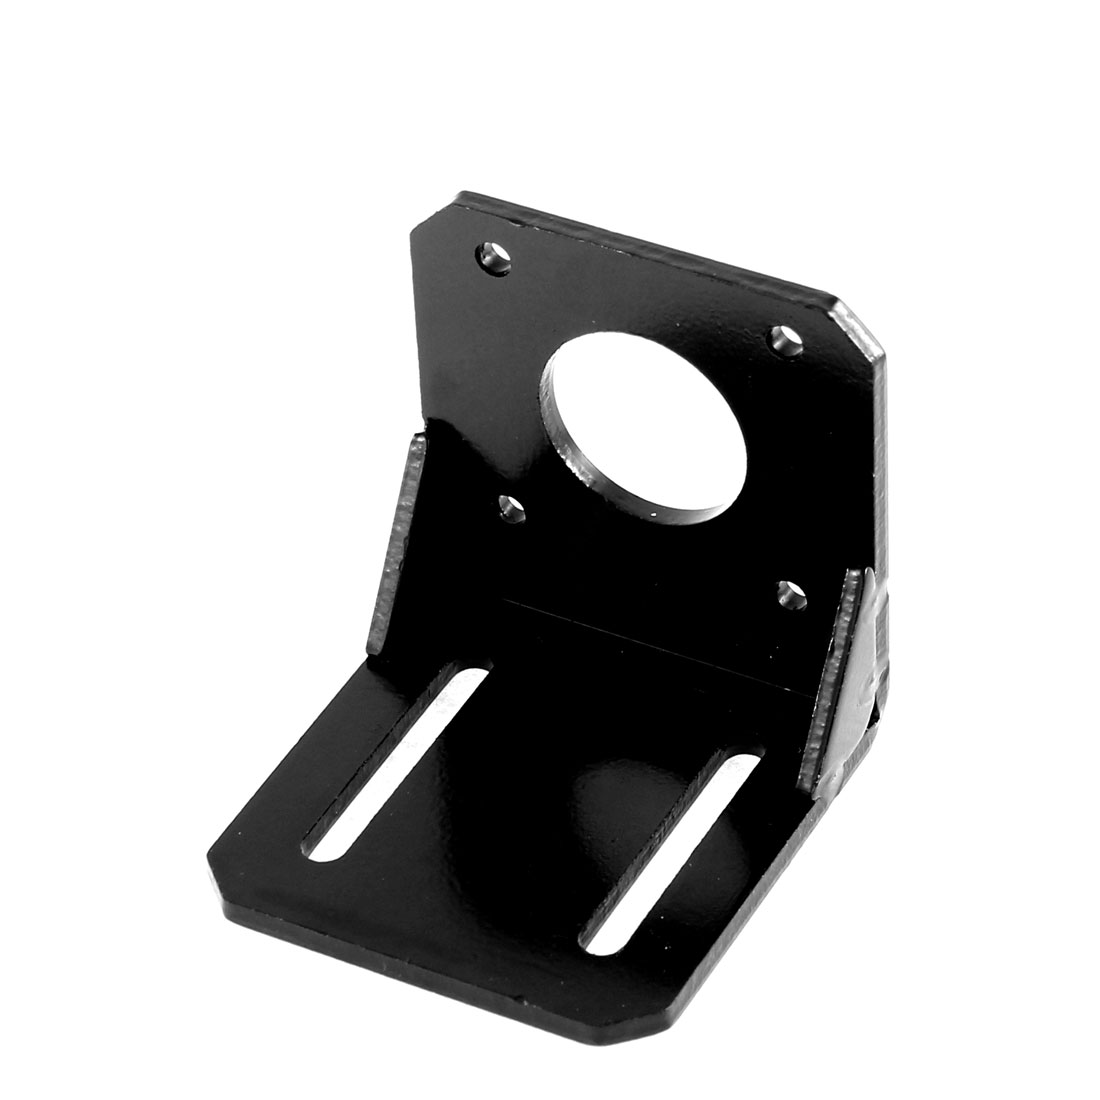 57 Series Step Stepper Motor Metal Shell Mounting Bracket Rack Black